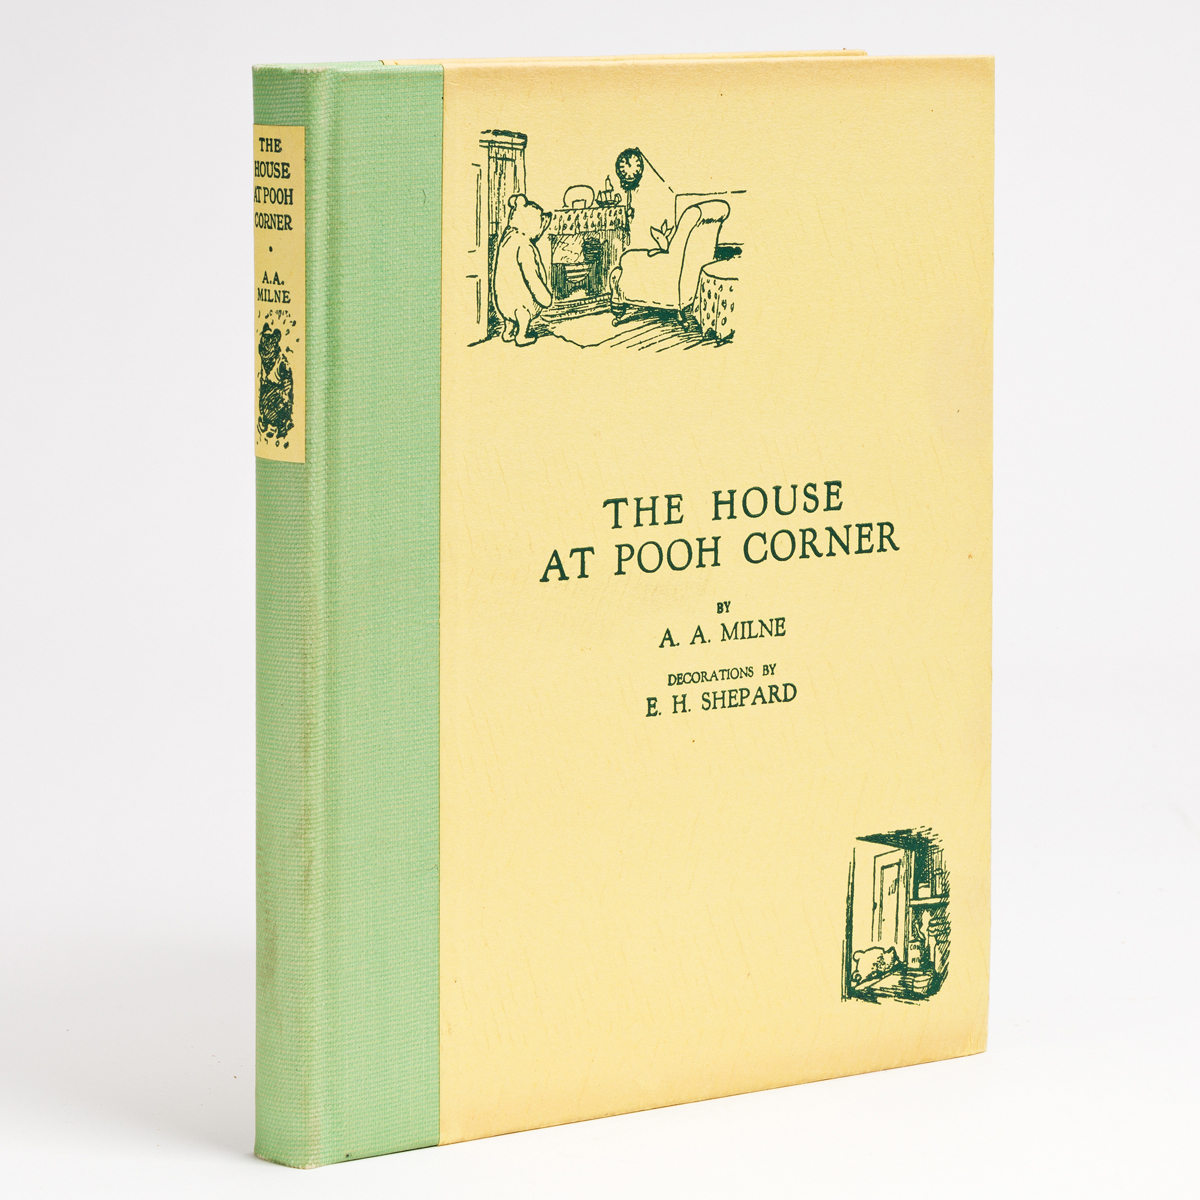 (CHILDRENS LITERATURE.) MILNE, A.A. The House at Pooh Corner.